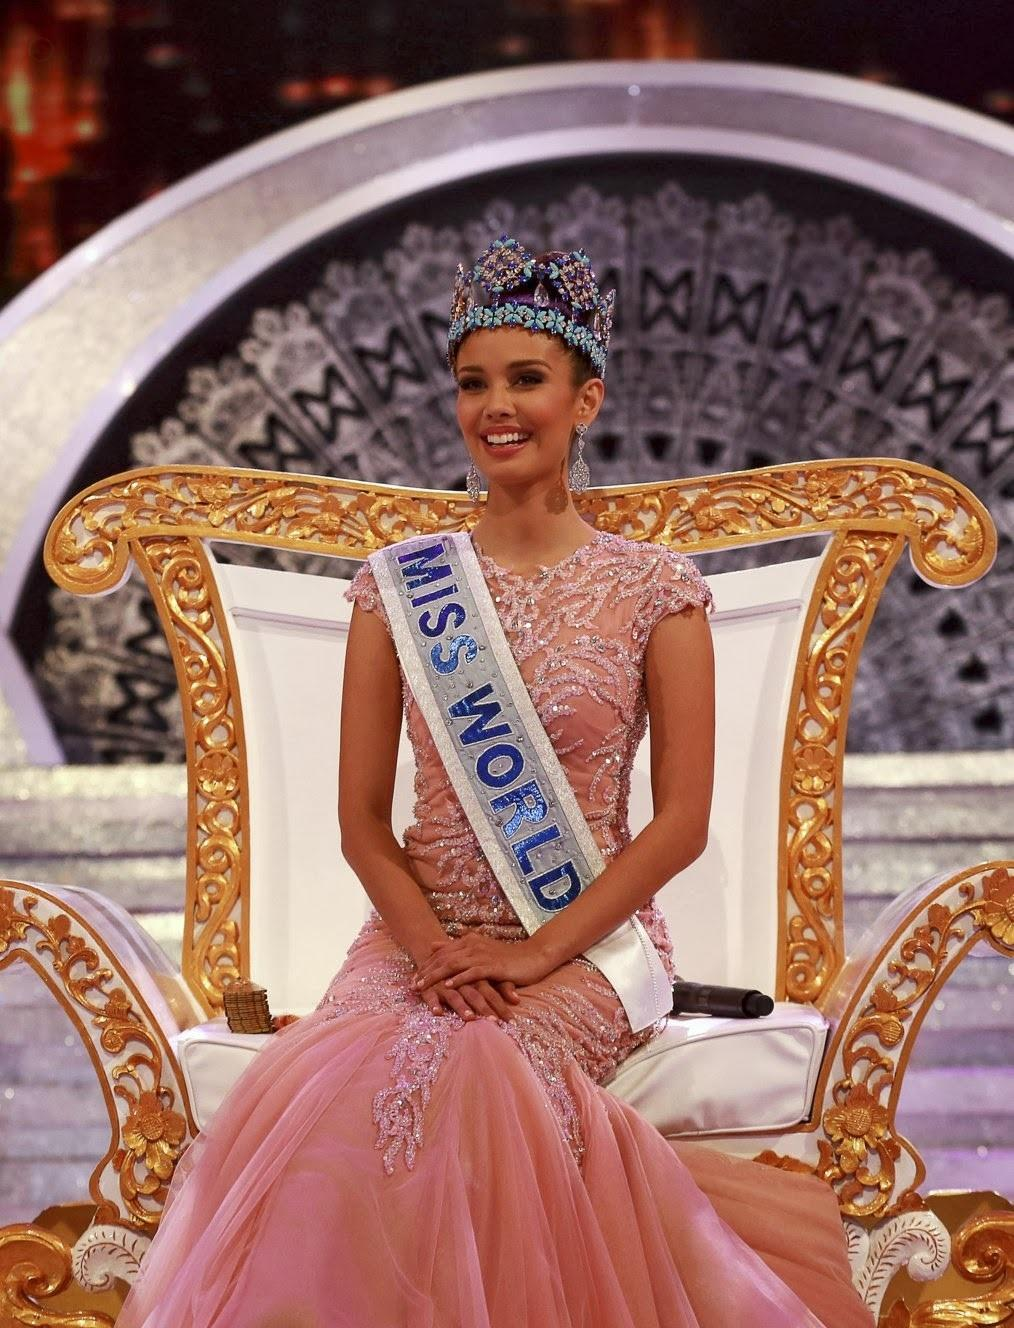 megan young, miss world 2013. 5a1bfd10